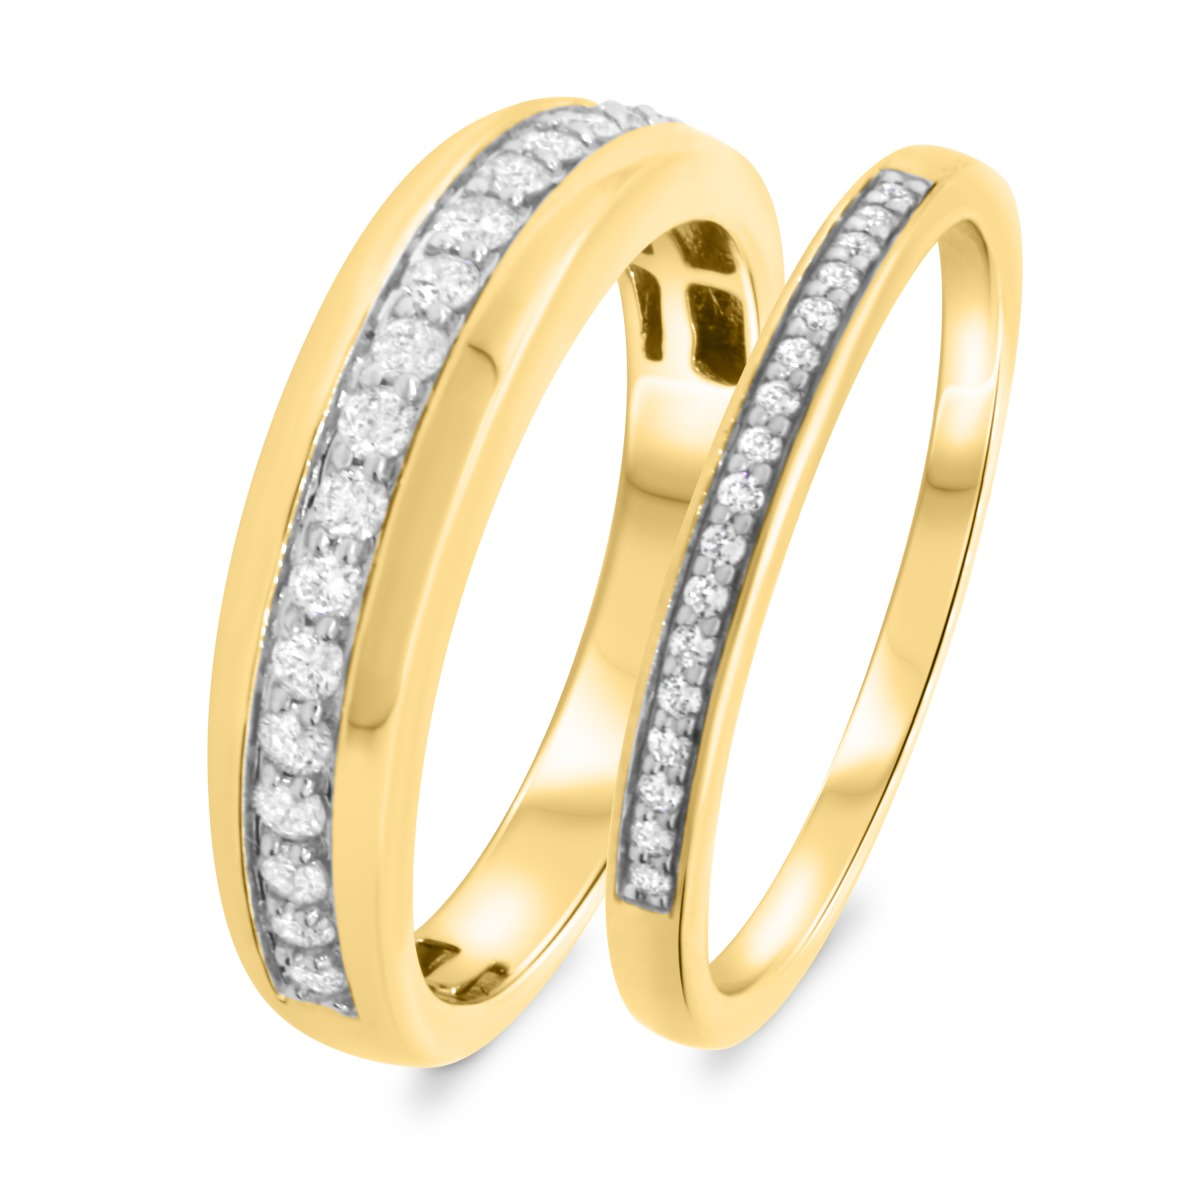 5/8 CT. T.W. Diamond Matching Wedding Band Set 14K Yellow Gold